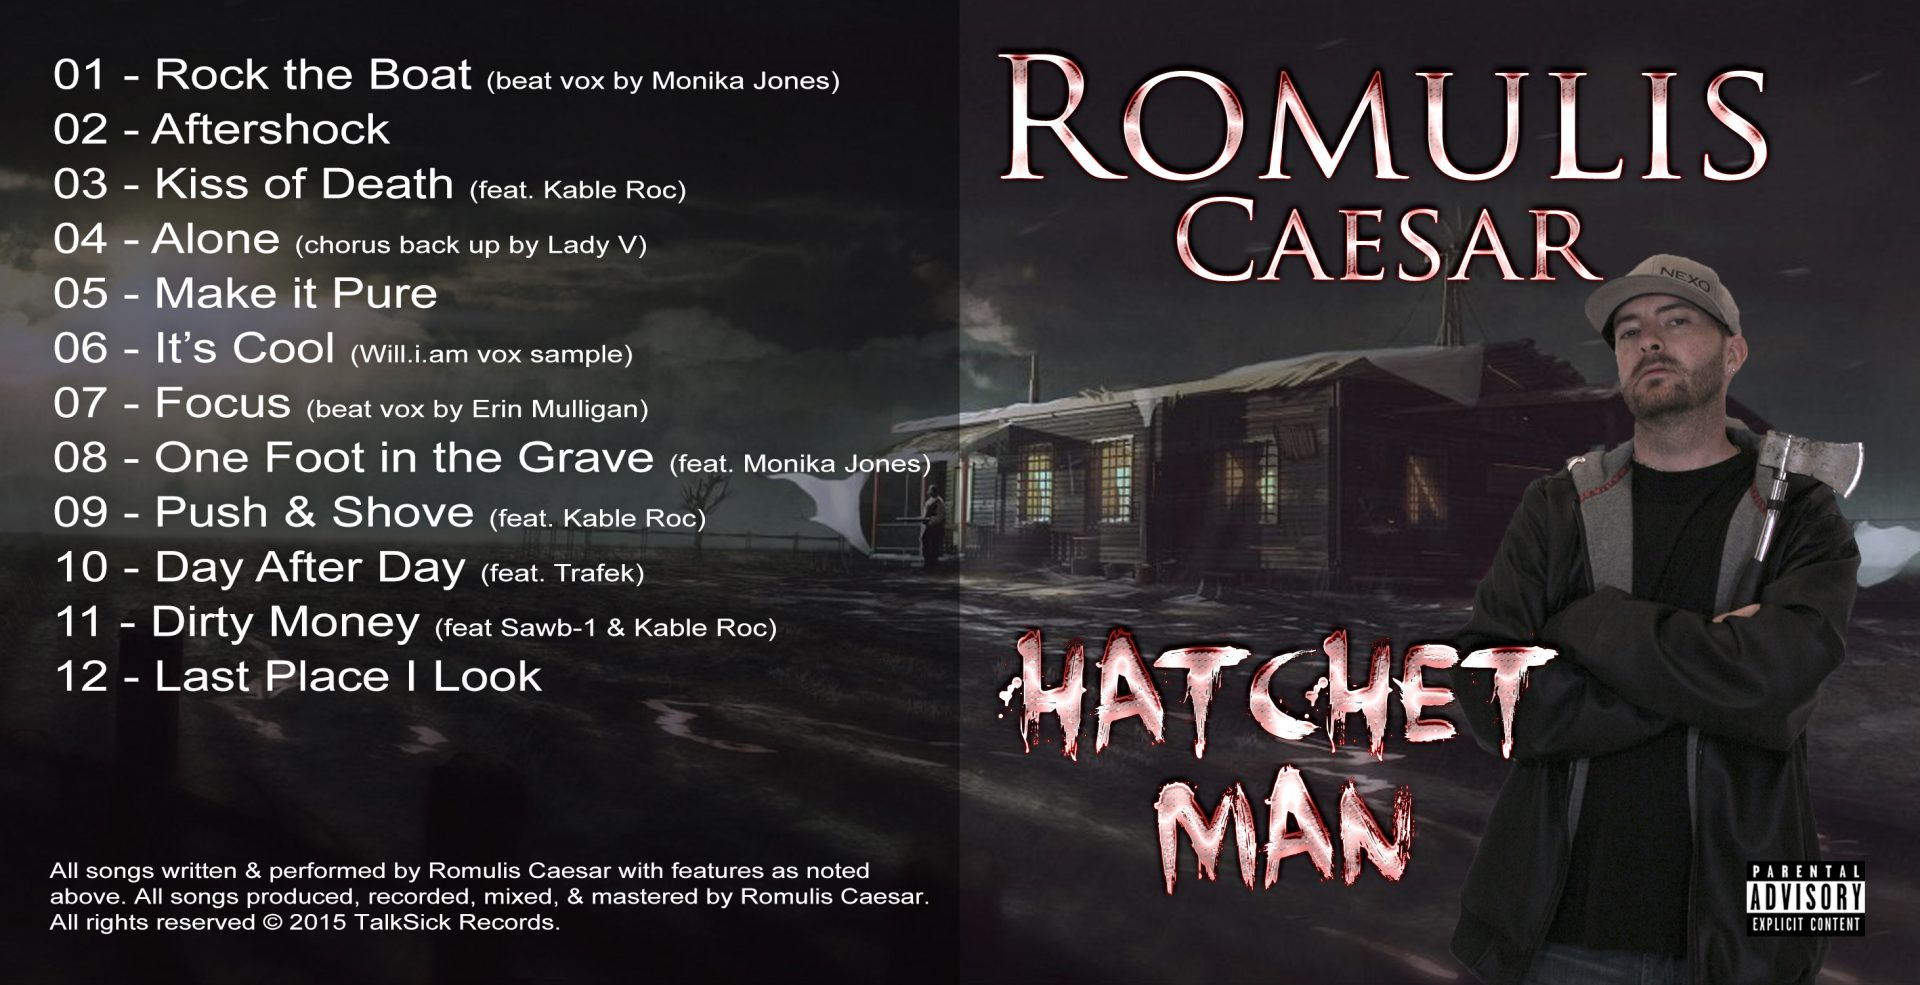 Romulis Caesar - Hatchet Man Outside Cover Art